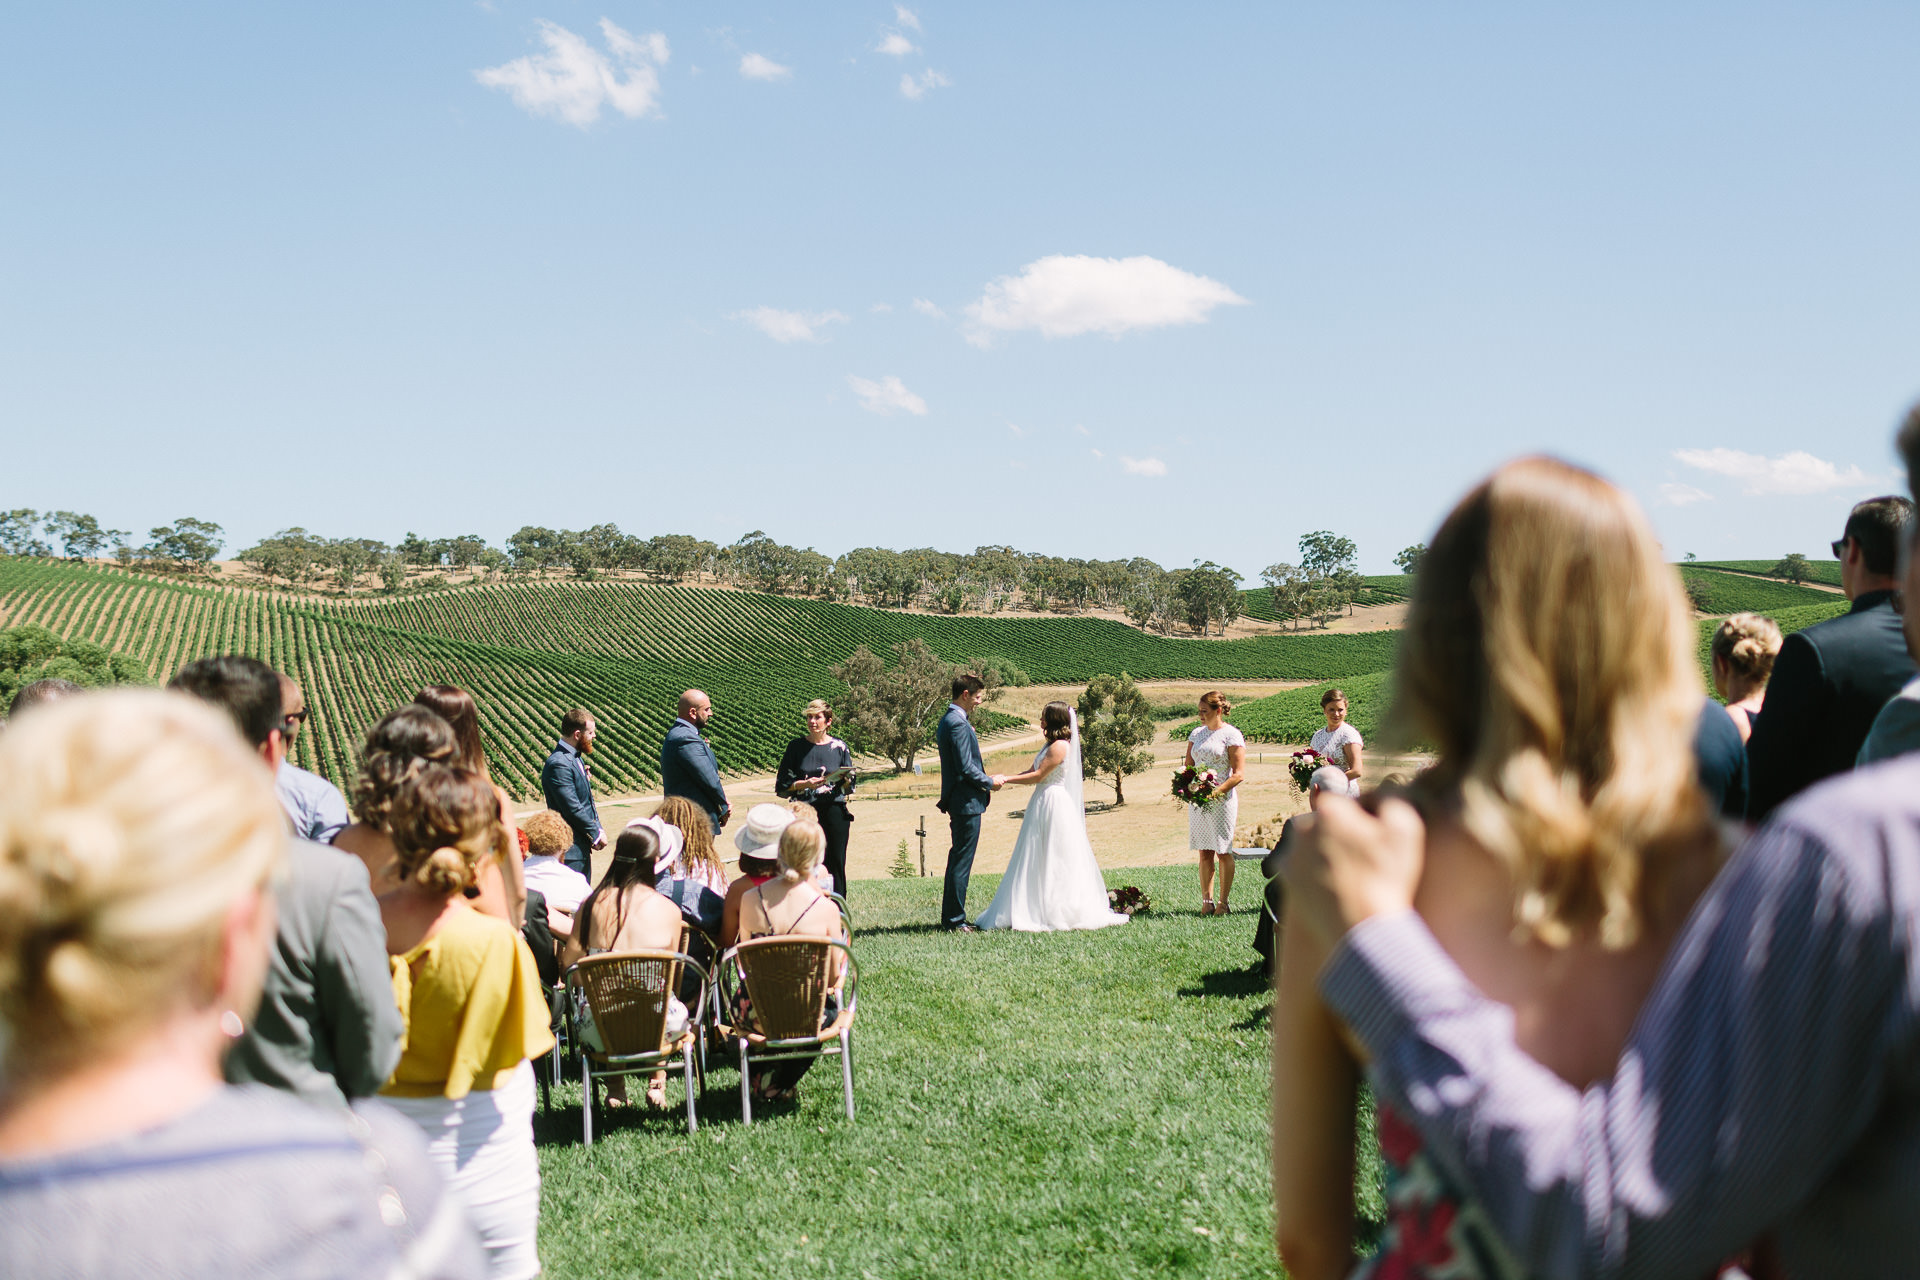 Longview winery wedding ceremony on lawn with sweeping vineyard views